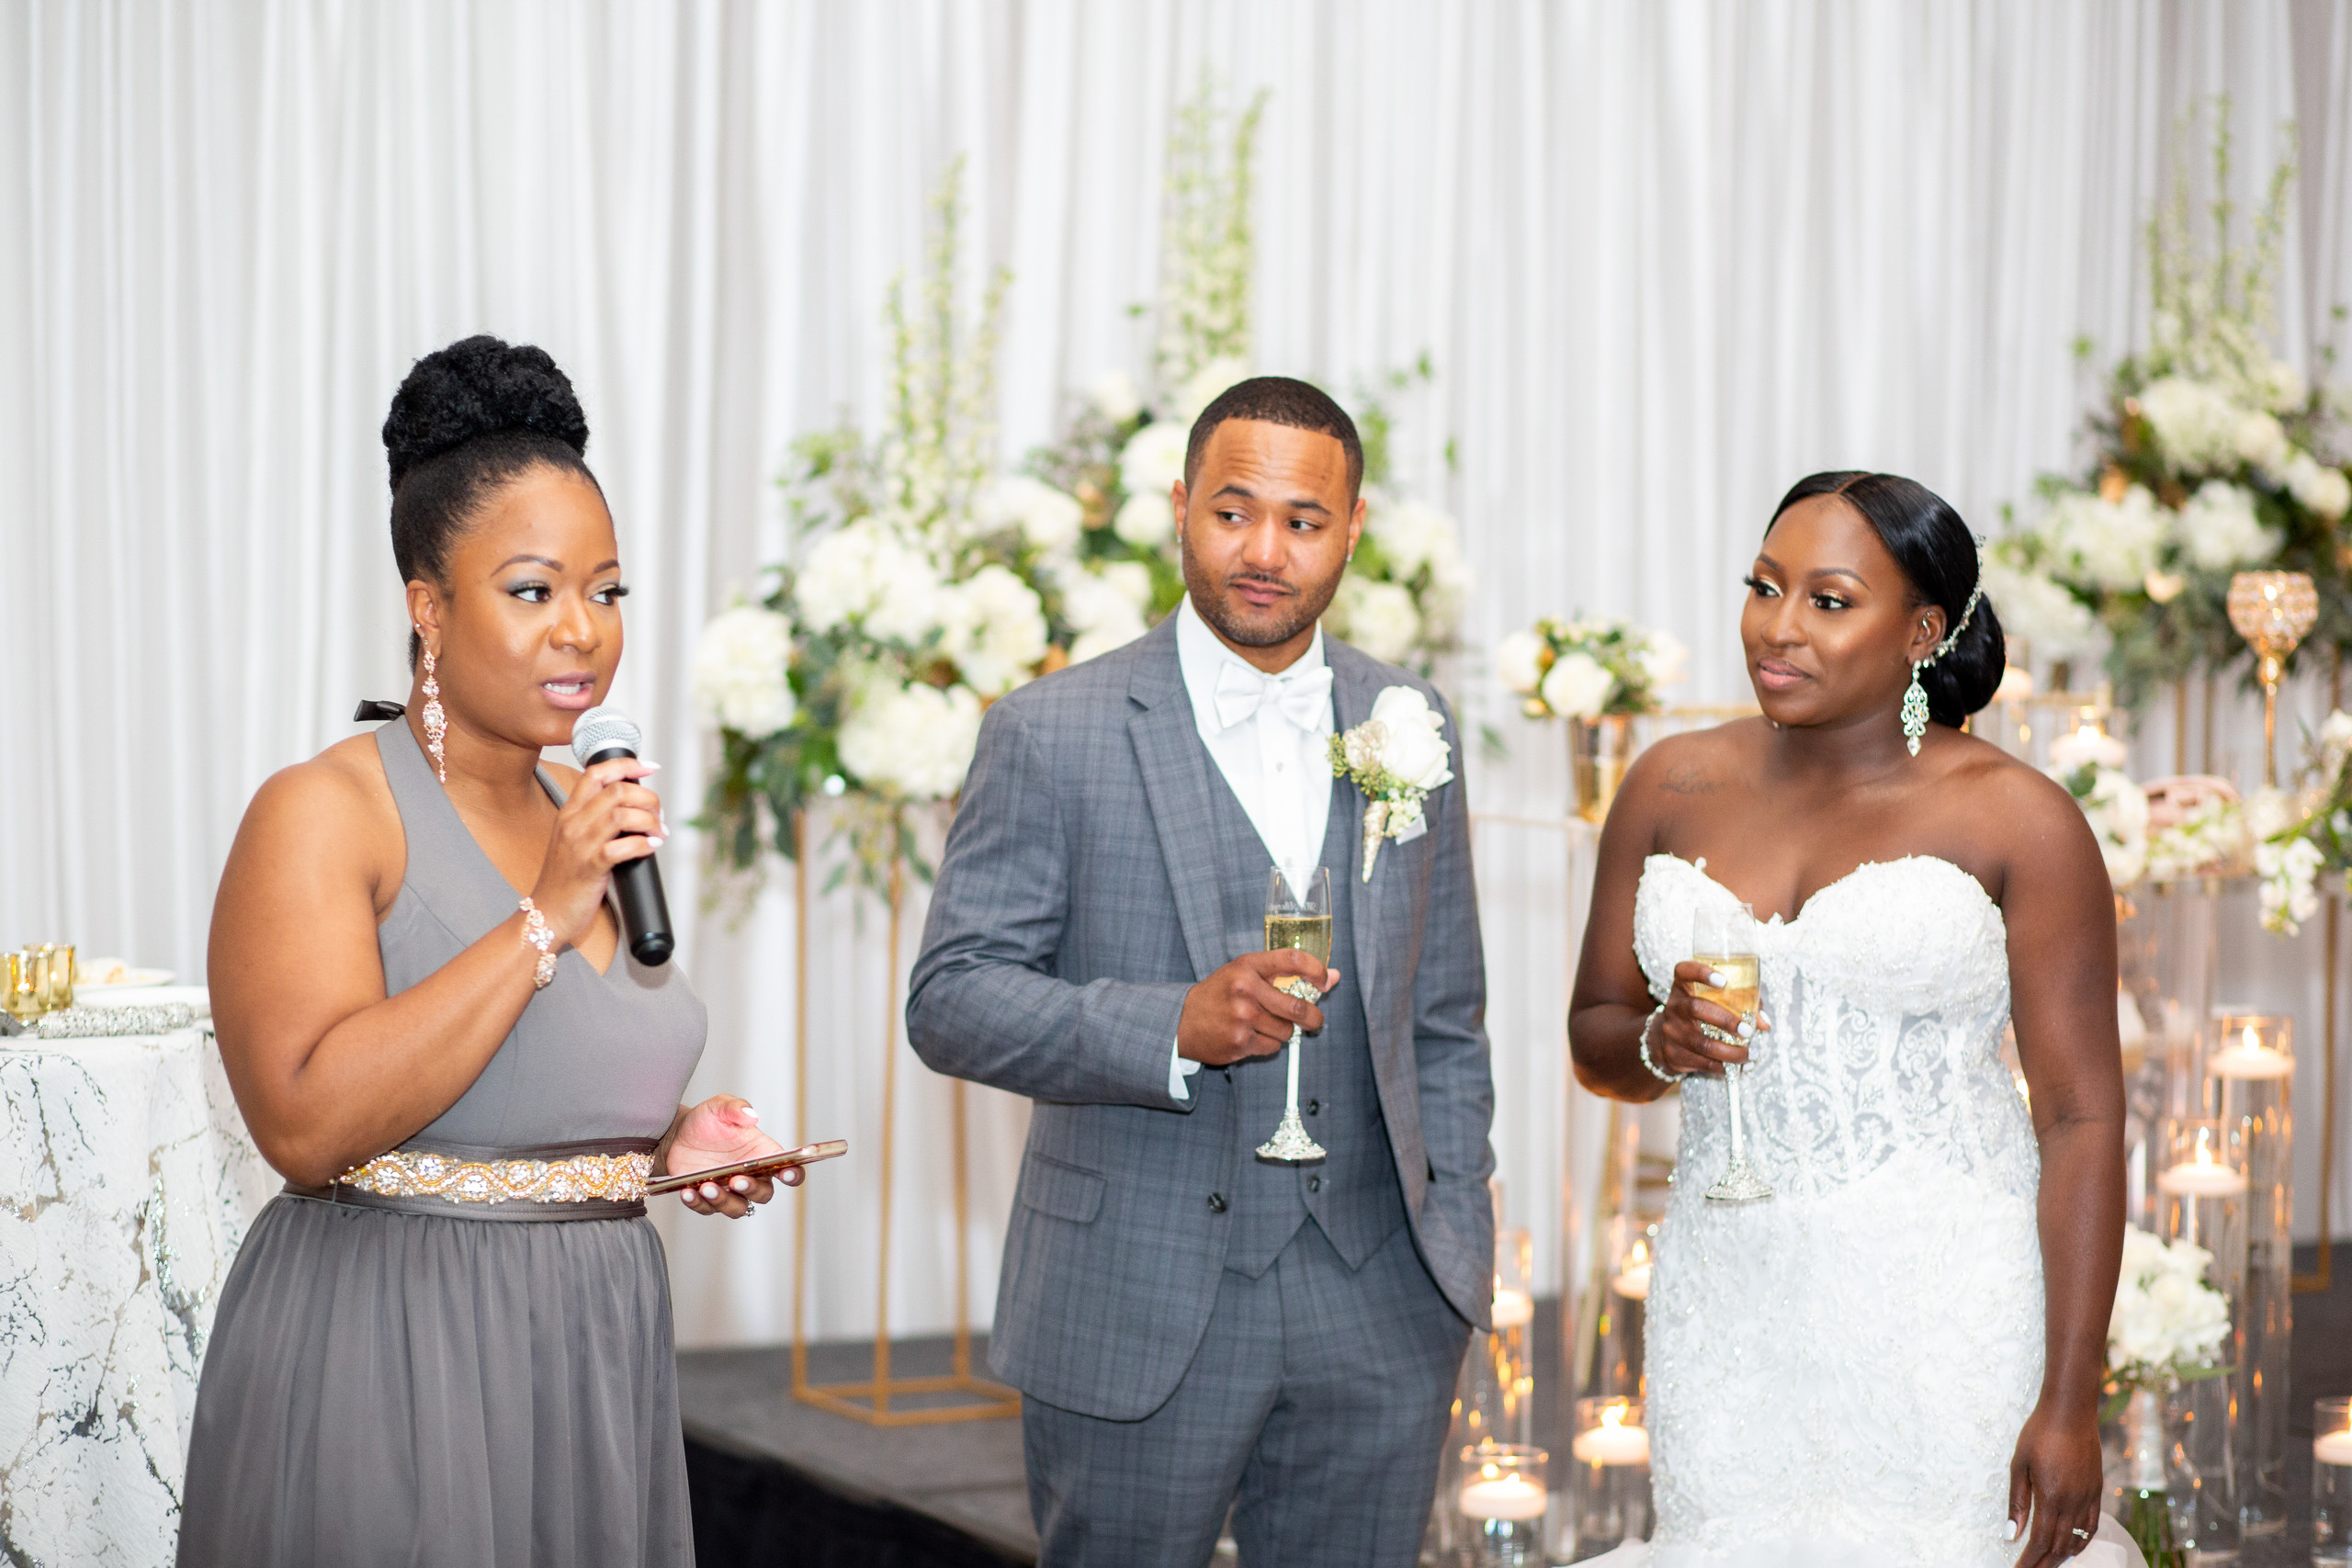 The maid of honor gives her speech and toasts the new couple during the wedding reception at the Hilton Main in Norfolk, Virginia.